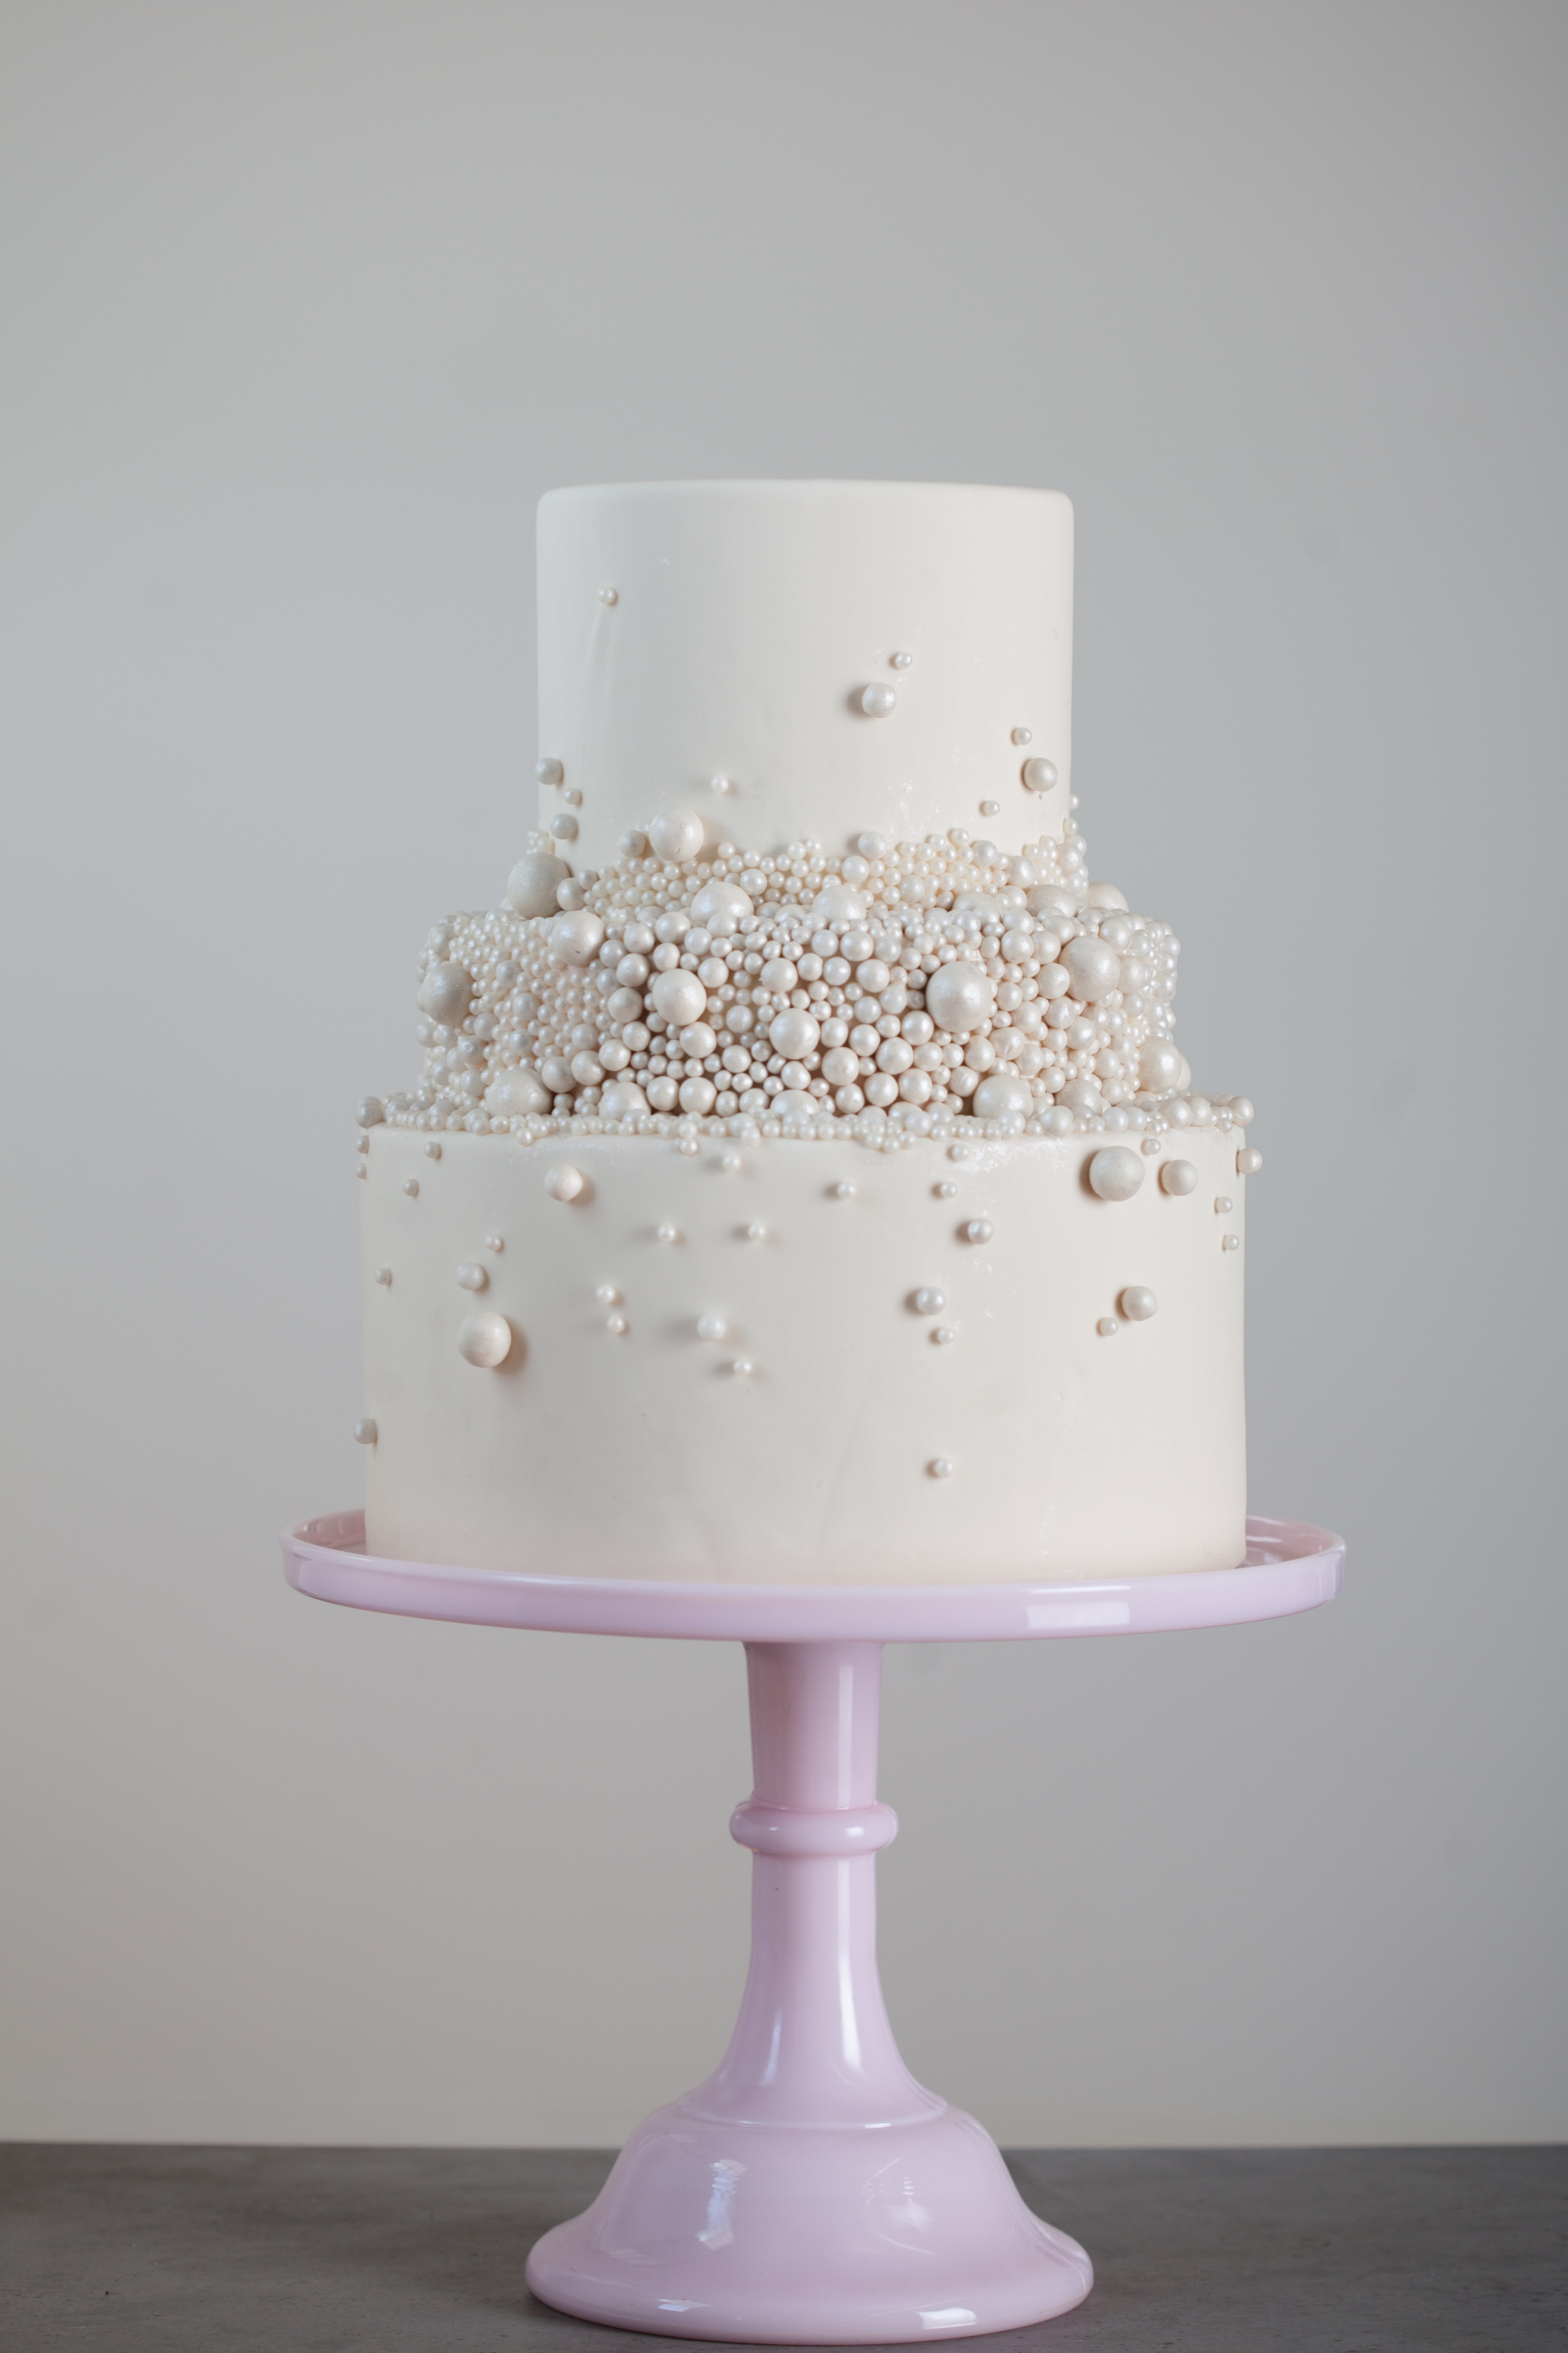 Using Edible Glue to Attach Pearls to a Cake